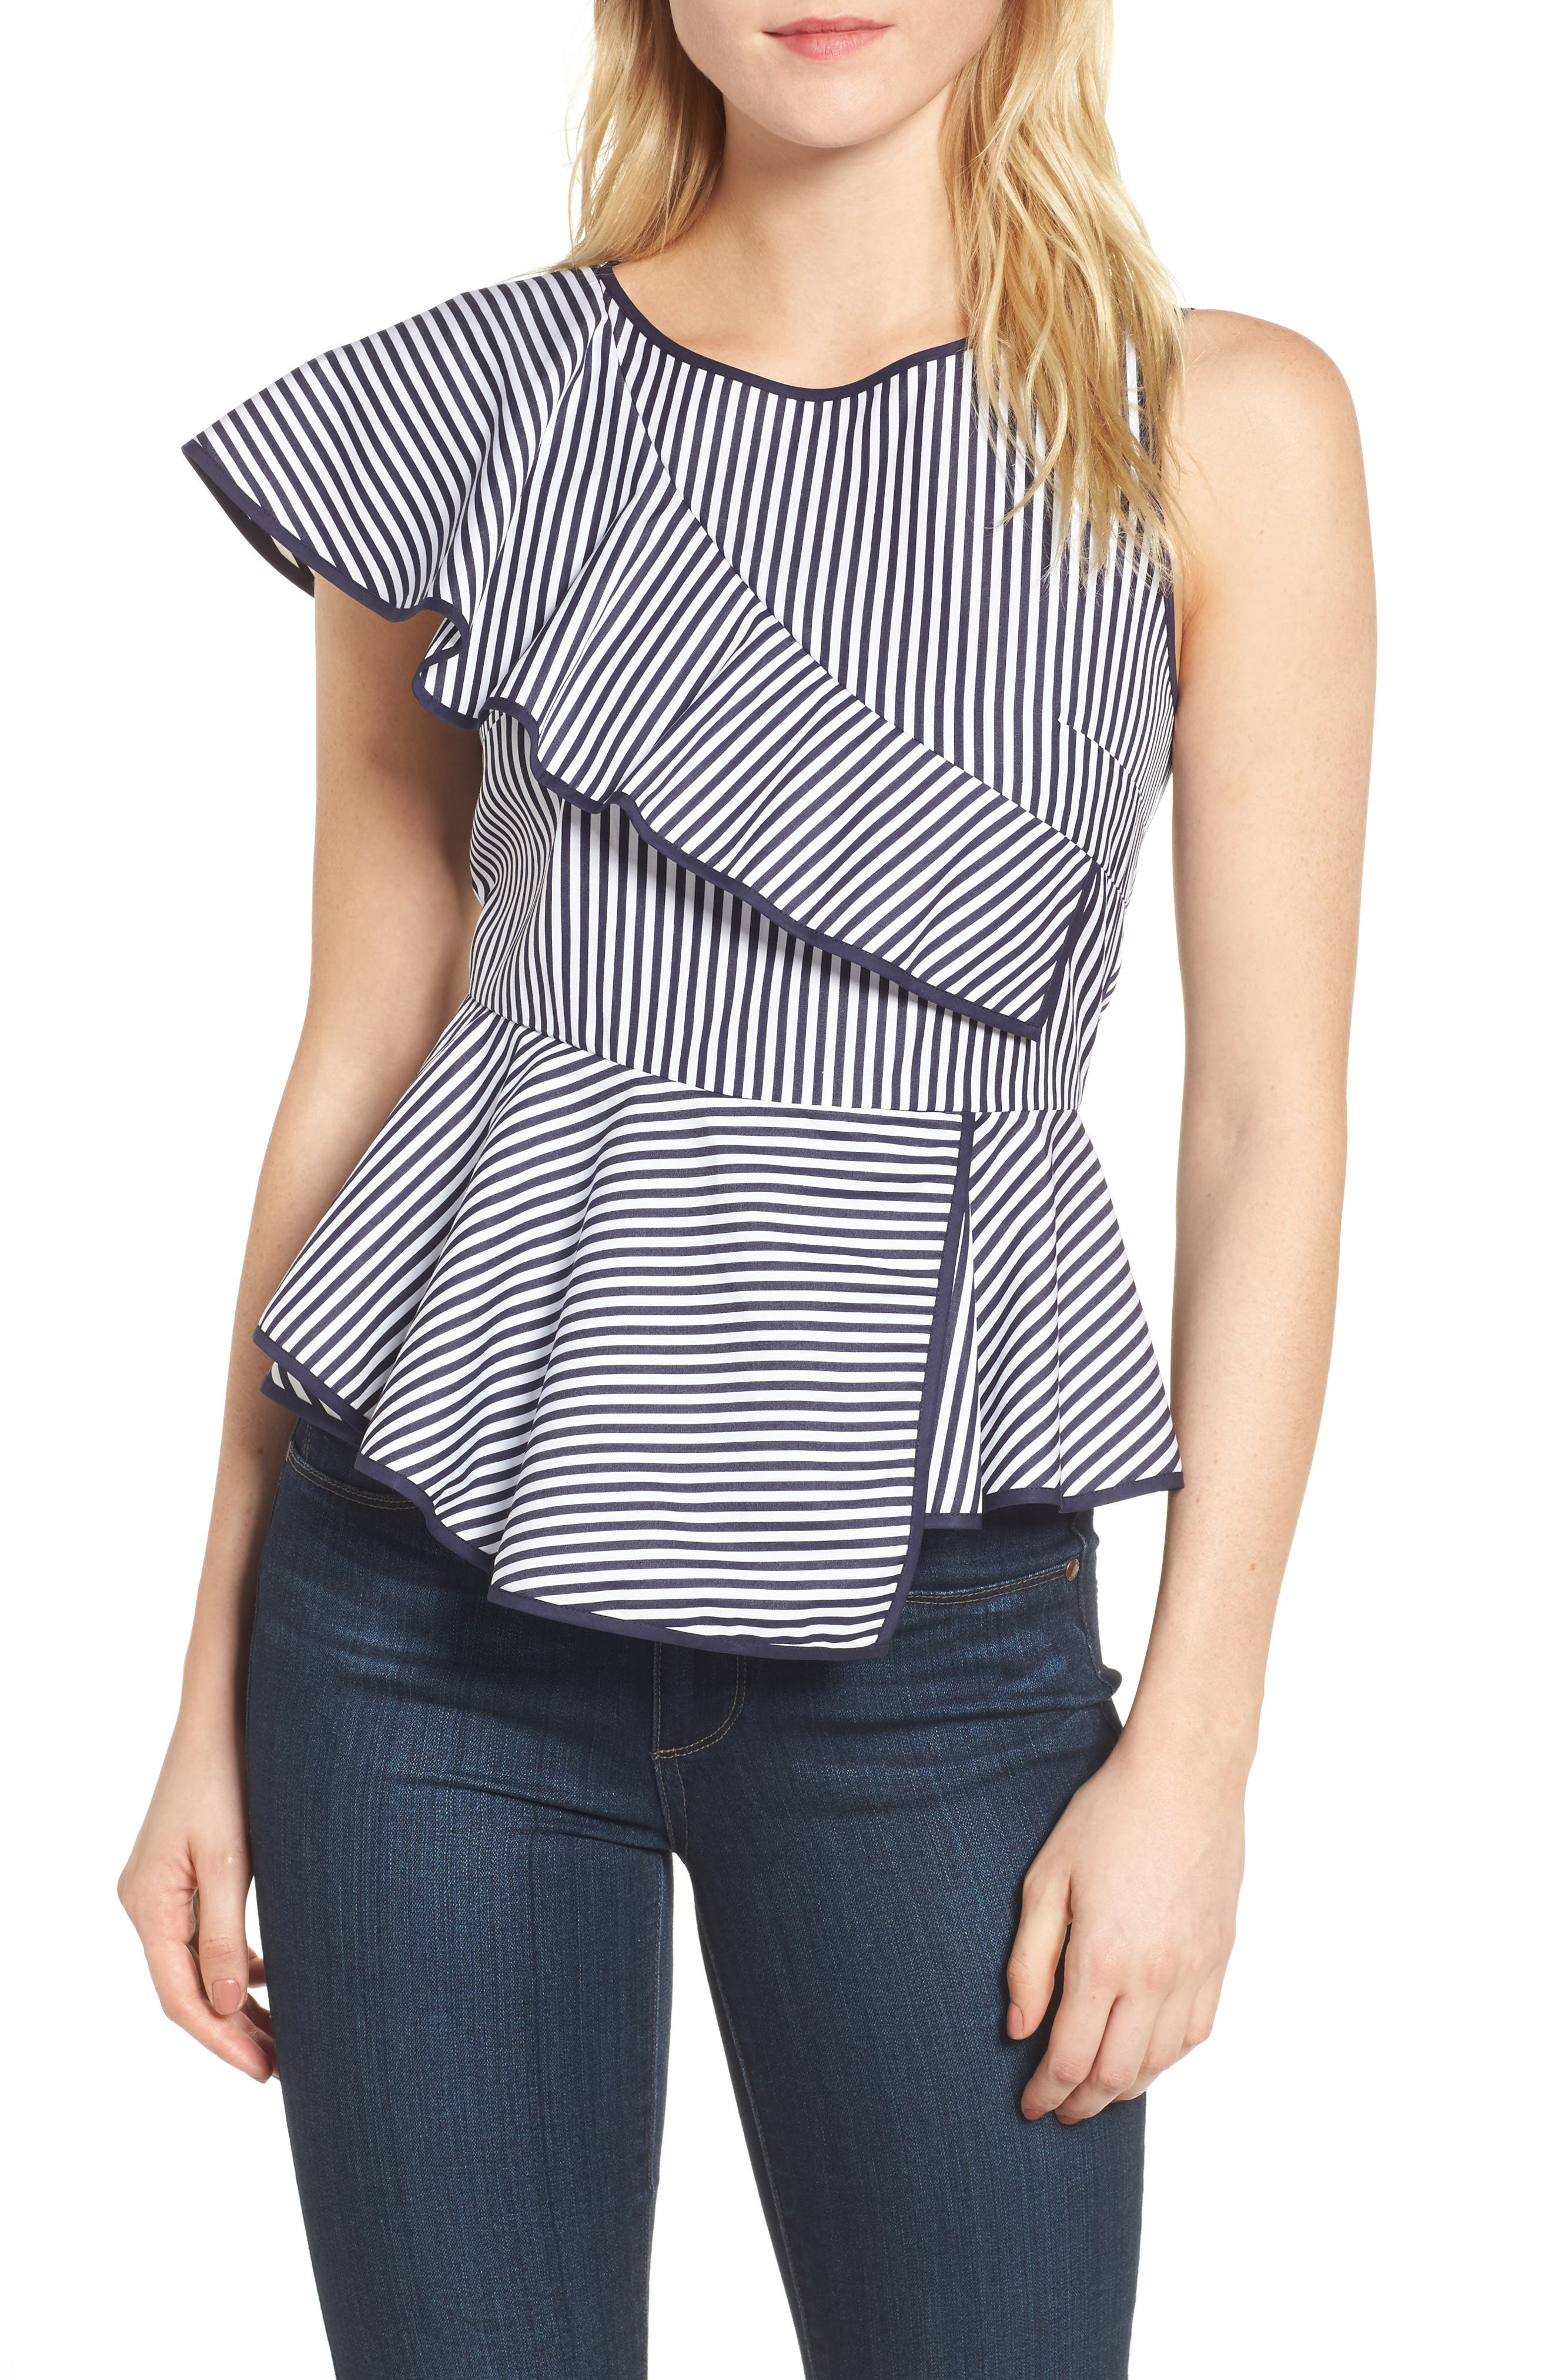 Alternate Image 1 Selected - Parker Carly Ruffle Top